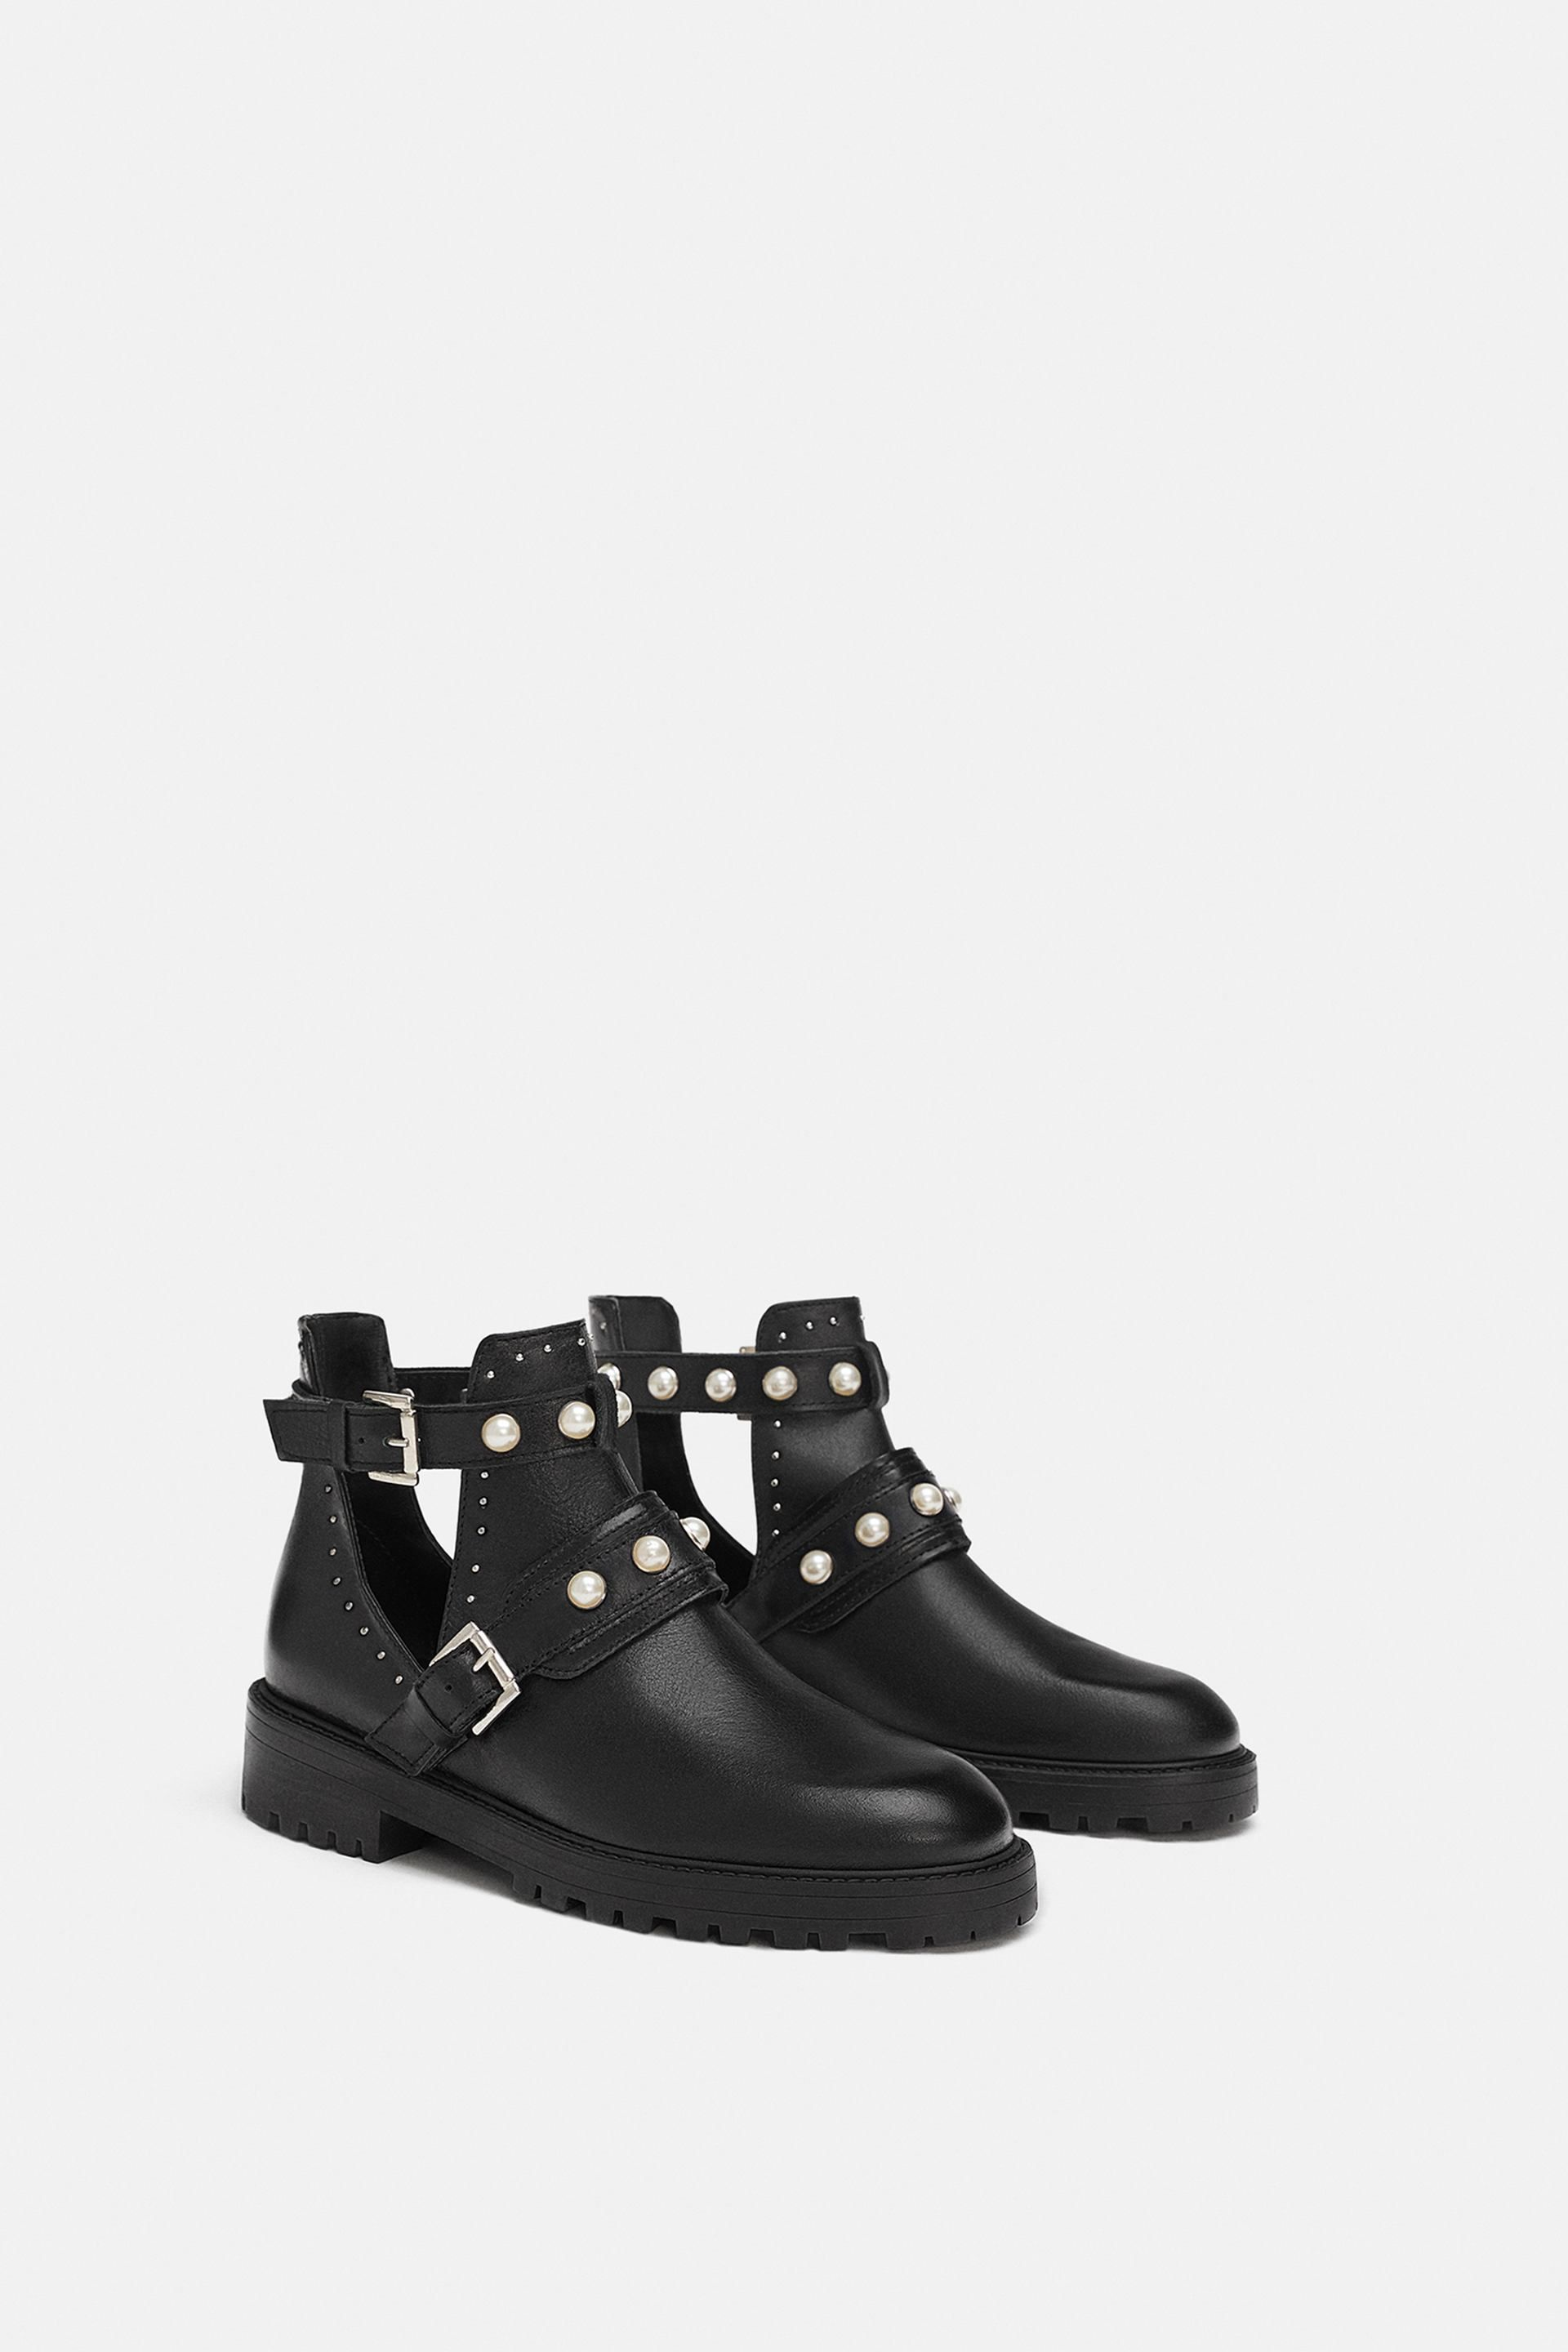 ec4ade79d6 ZARA - WOMAN - LOW HEELED LEATHER ANKLE BOOTS WITH PEARLS